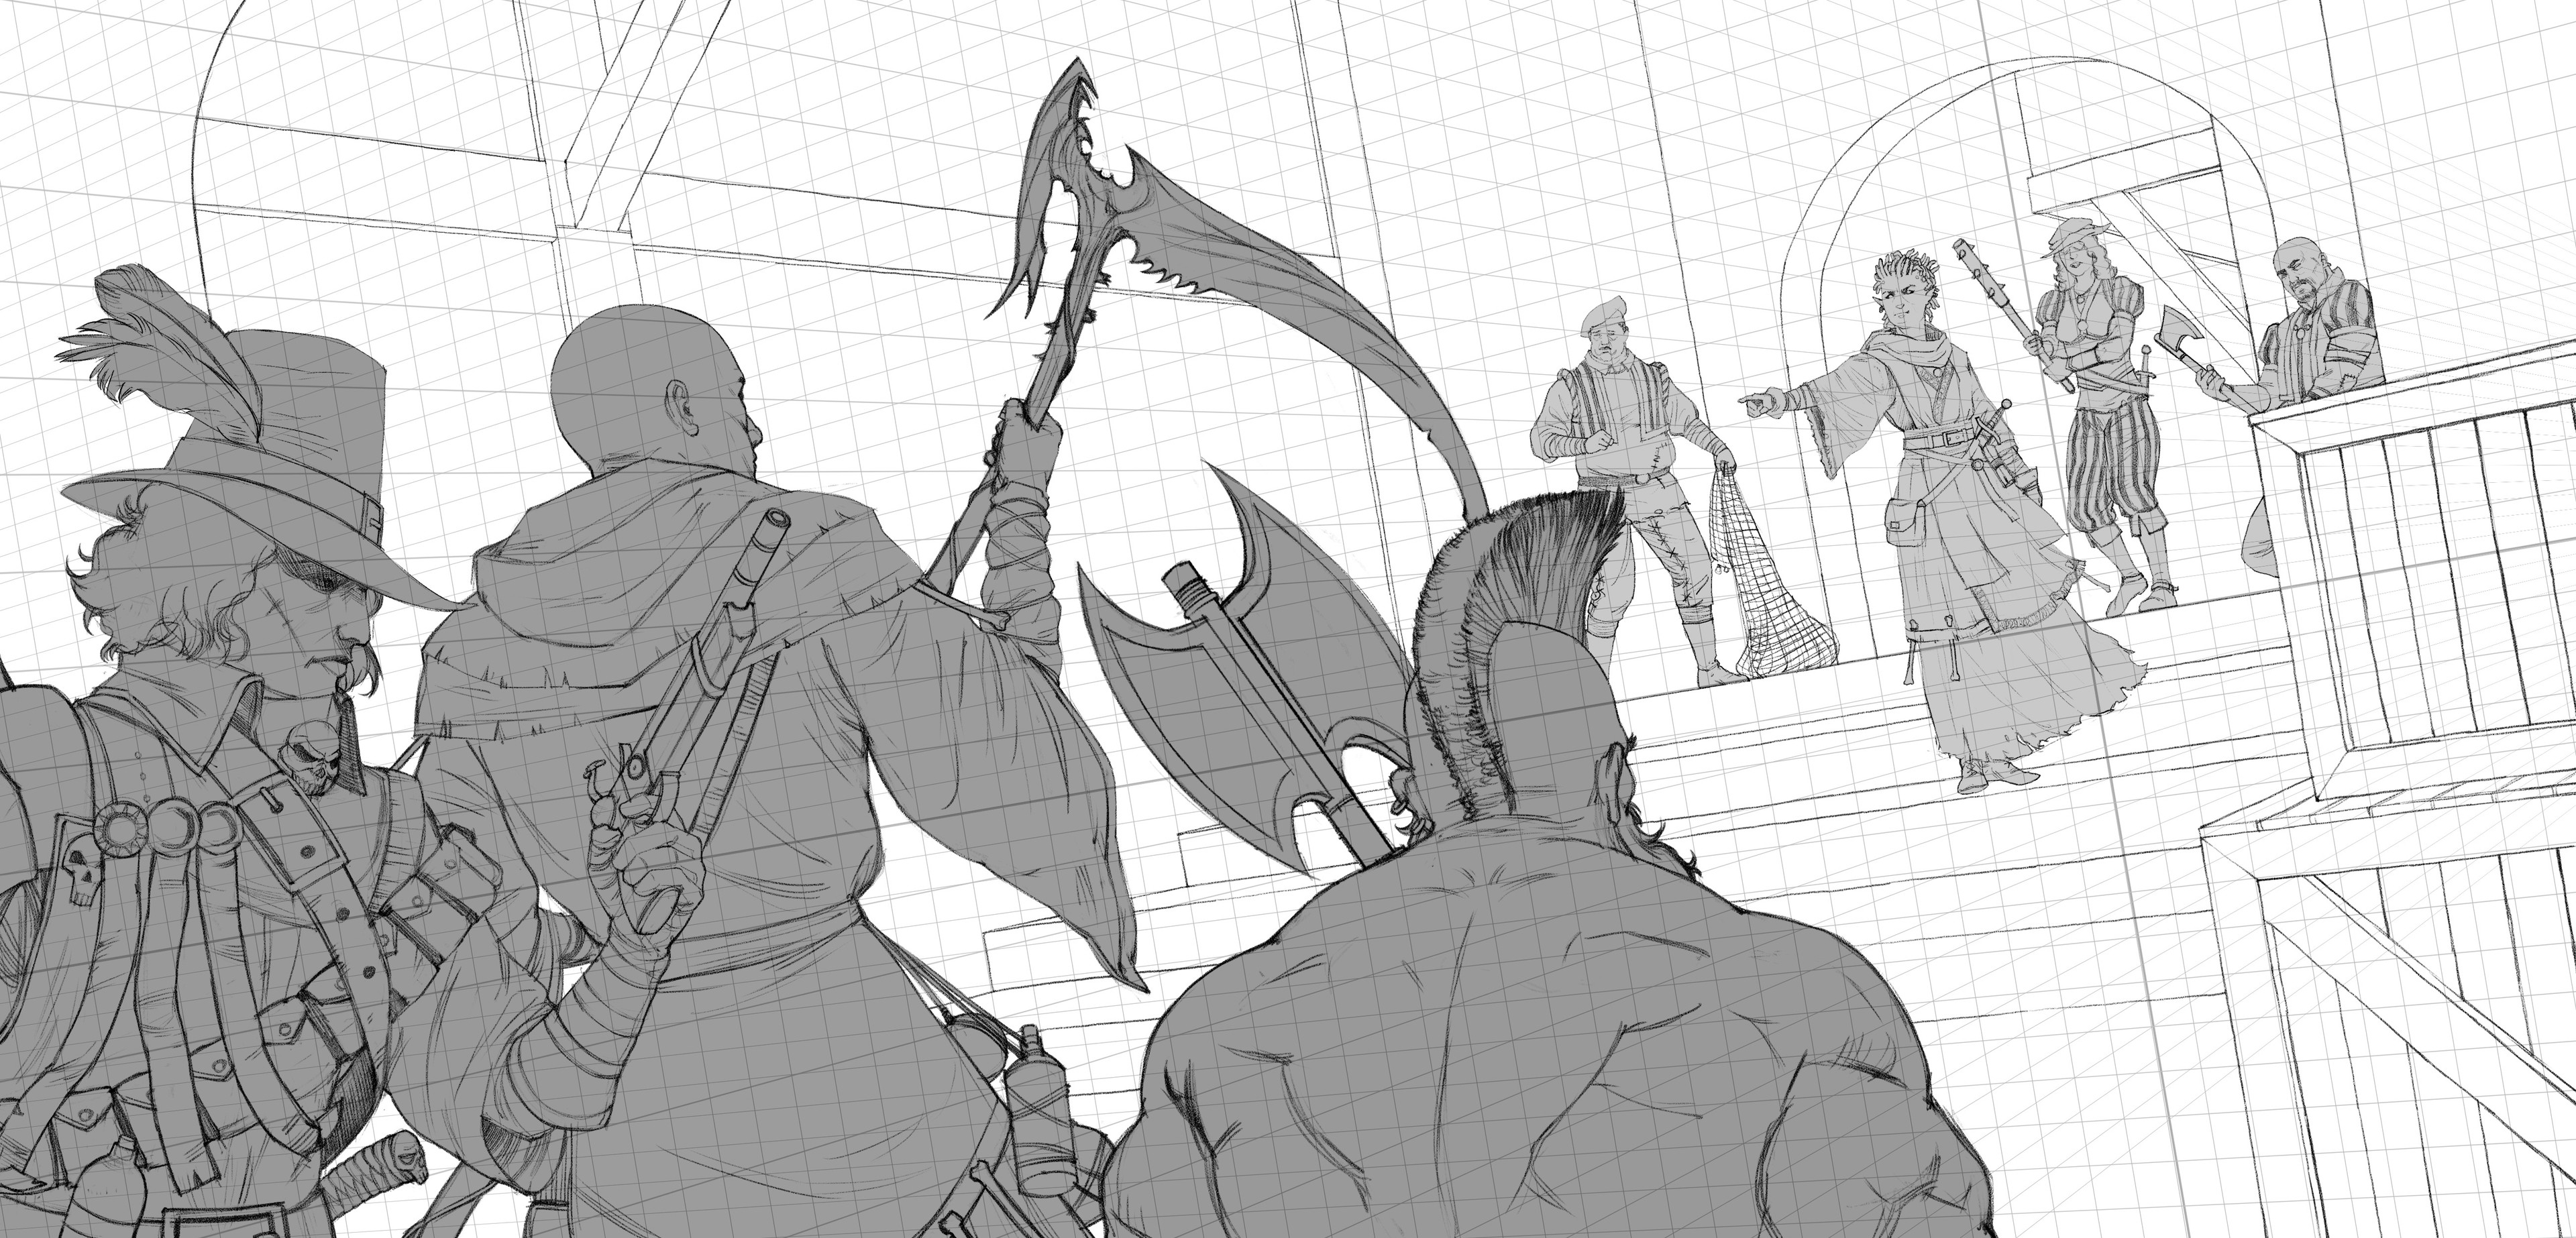 tighter sketch based on approved thumbnail